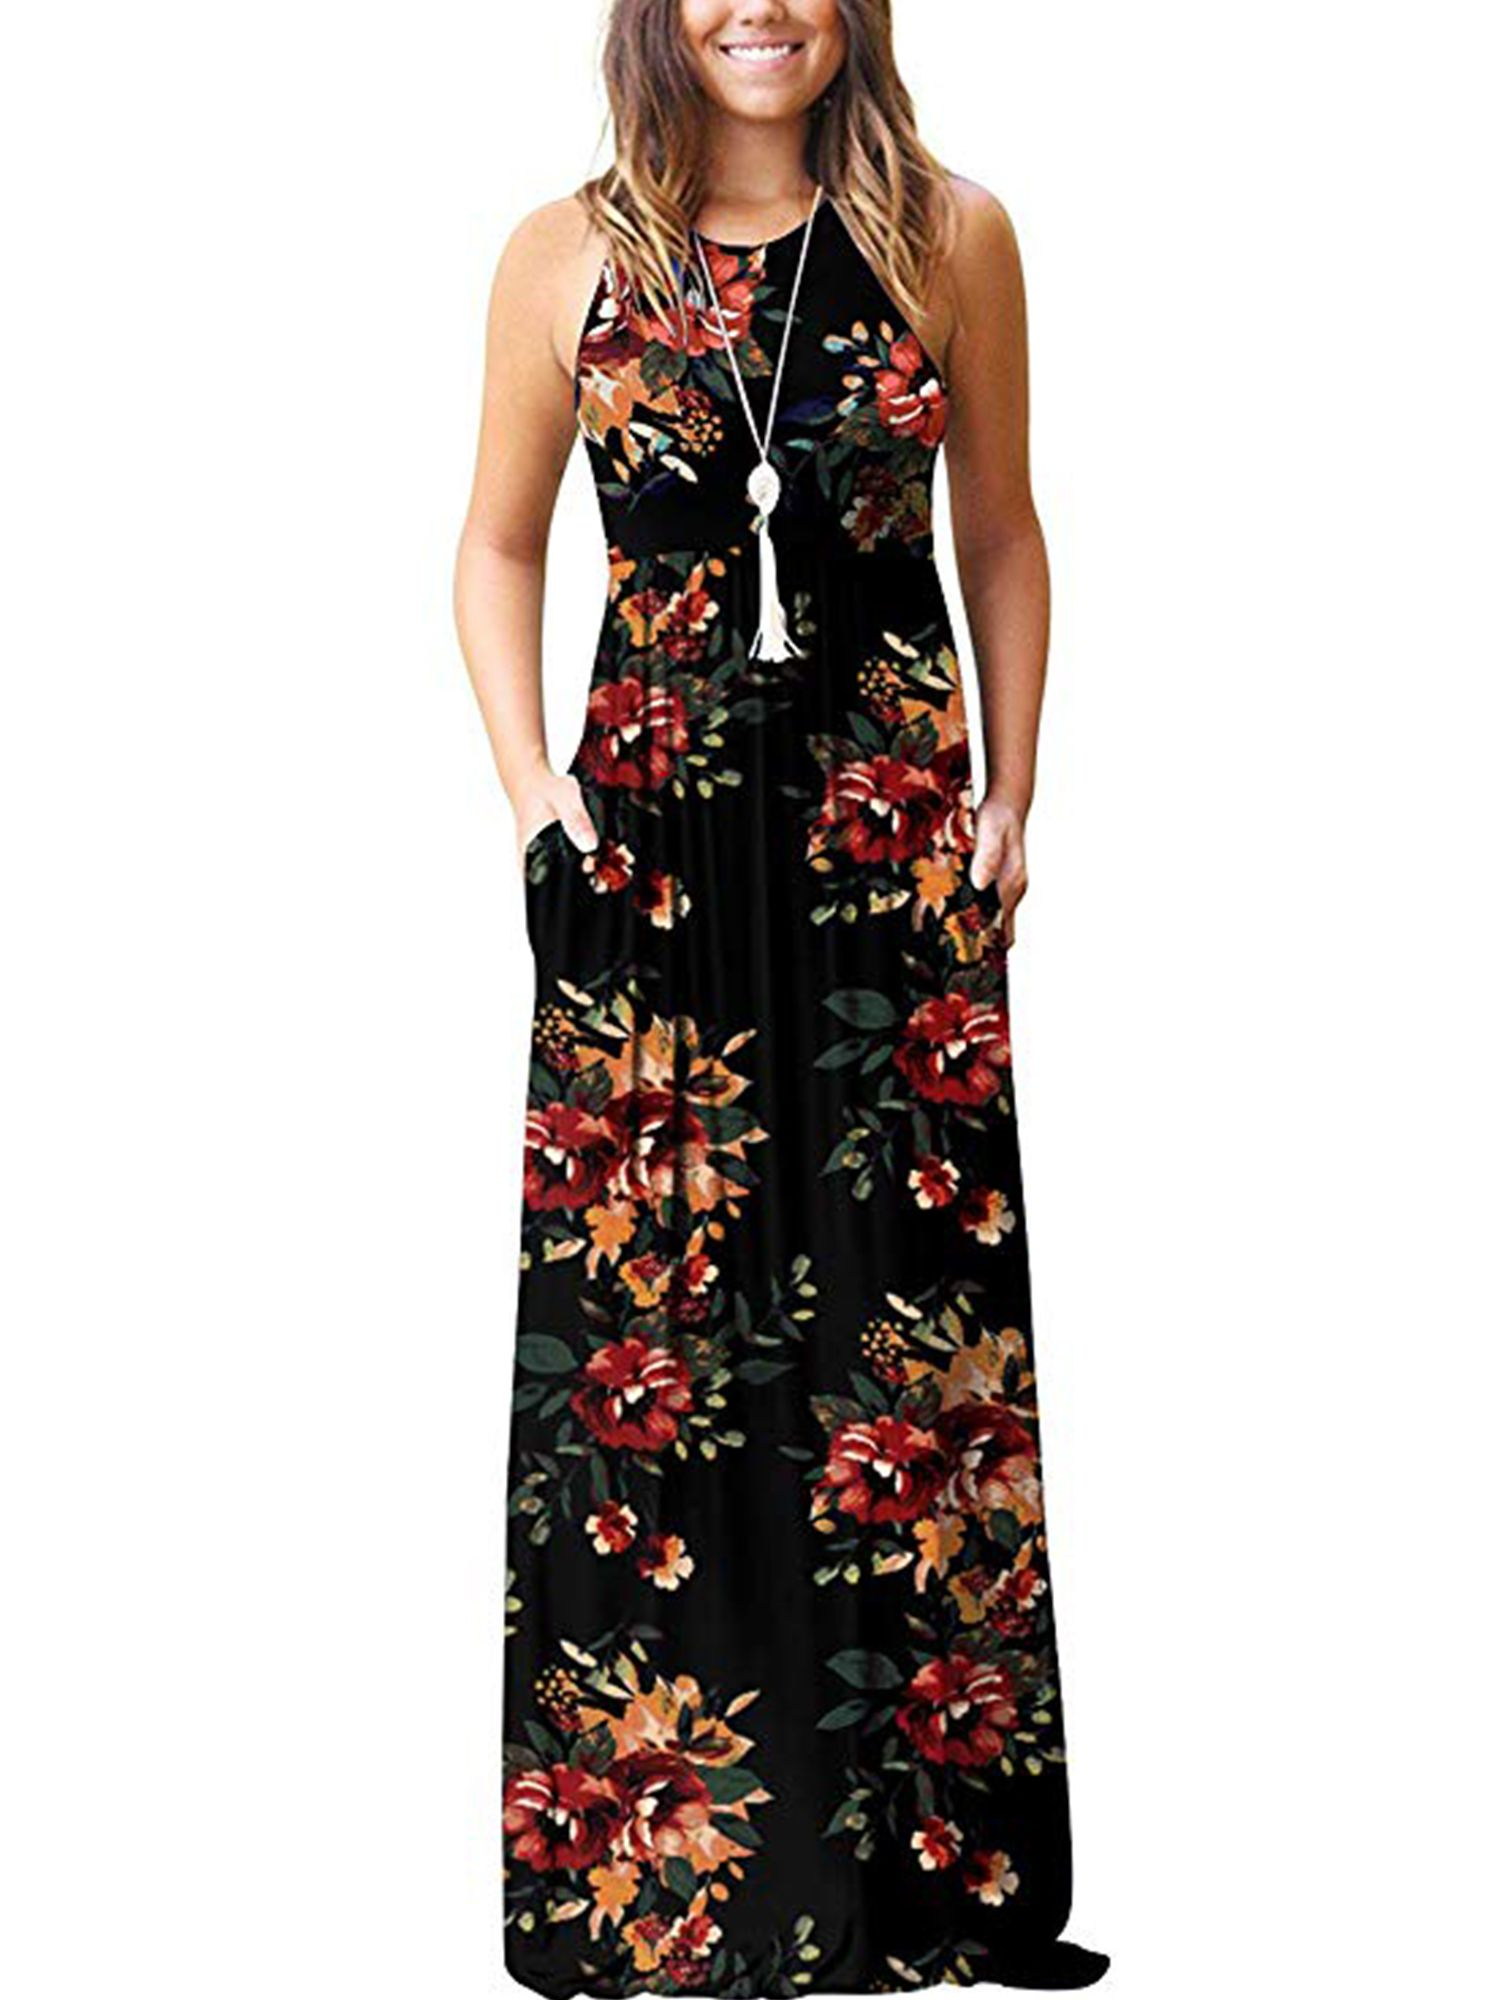 Women Holiday Chiffon Floral Casual Beach Party Sleeveless Dress Vest Welcome